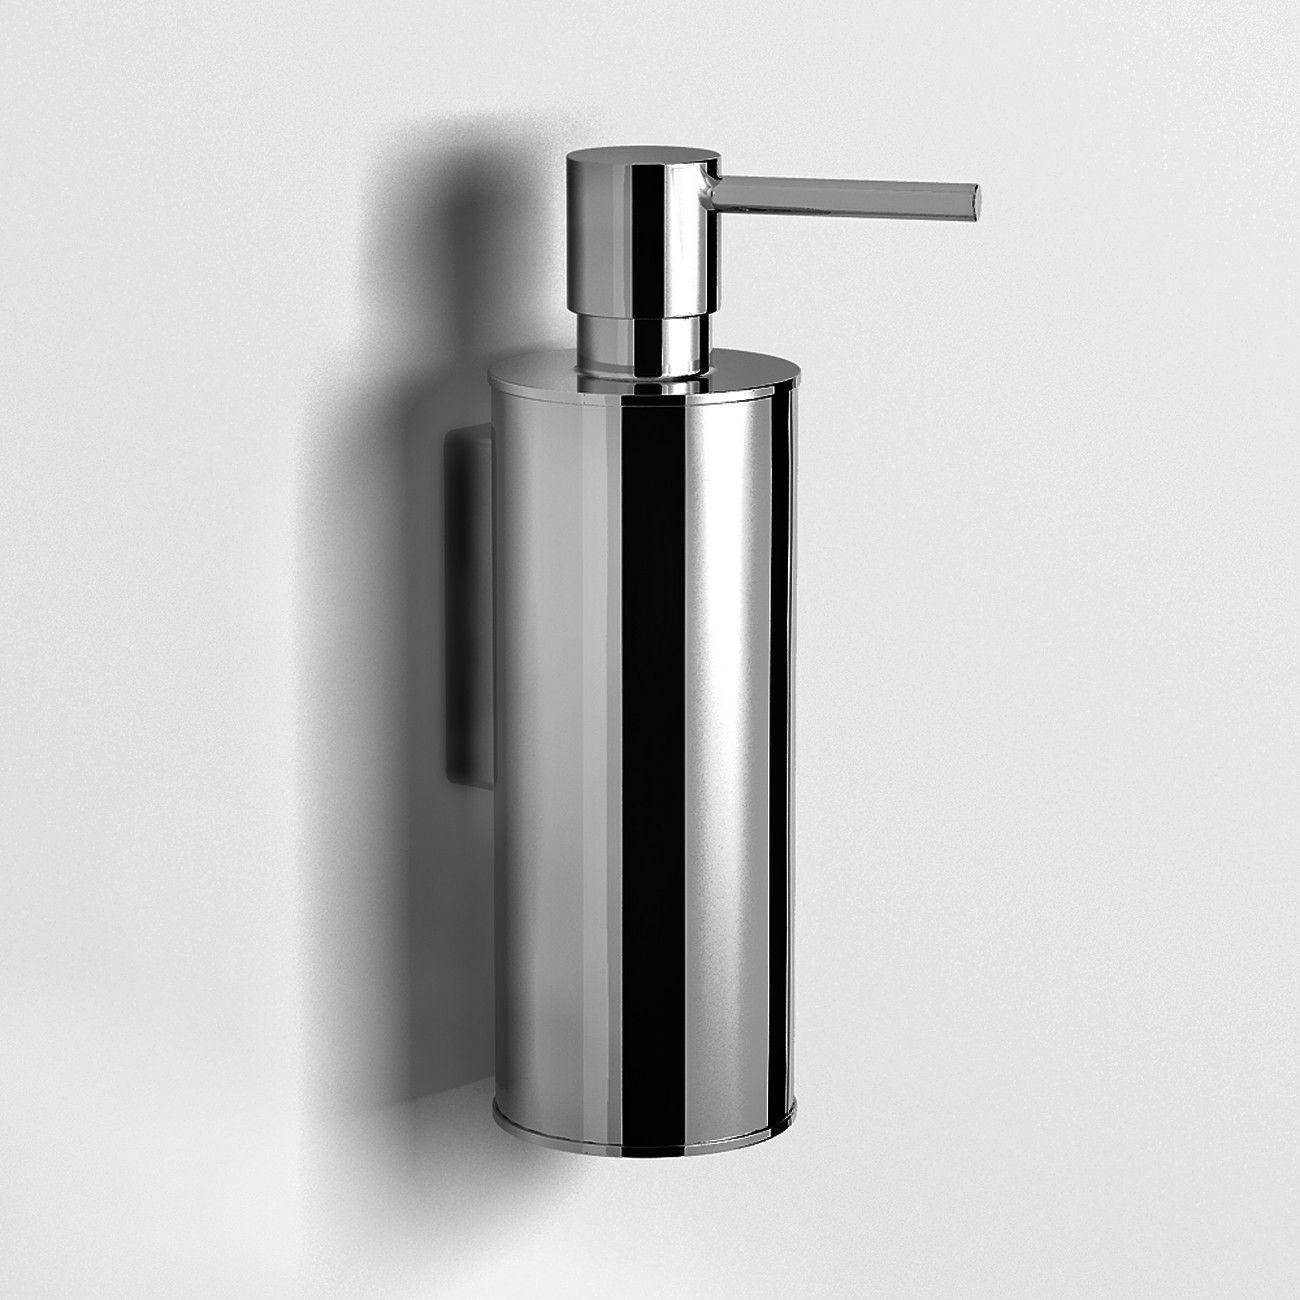 Myhill Wall Mounted Soap Dispenser Deisgner Bathroom Accessories Rogerseller Wall Mounted Soap Dispenser Soap Dispenser Soap Pump Dispenser